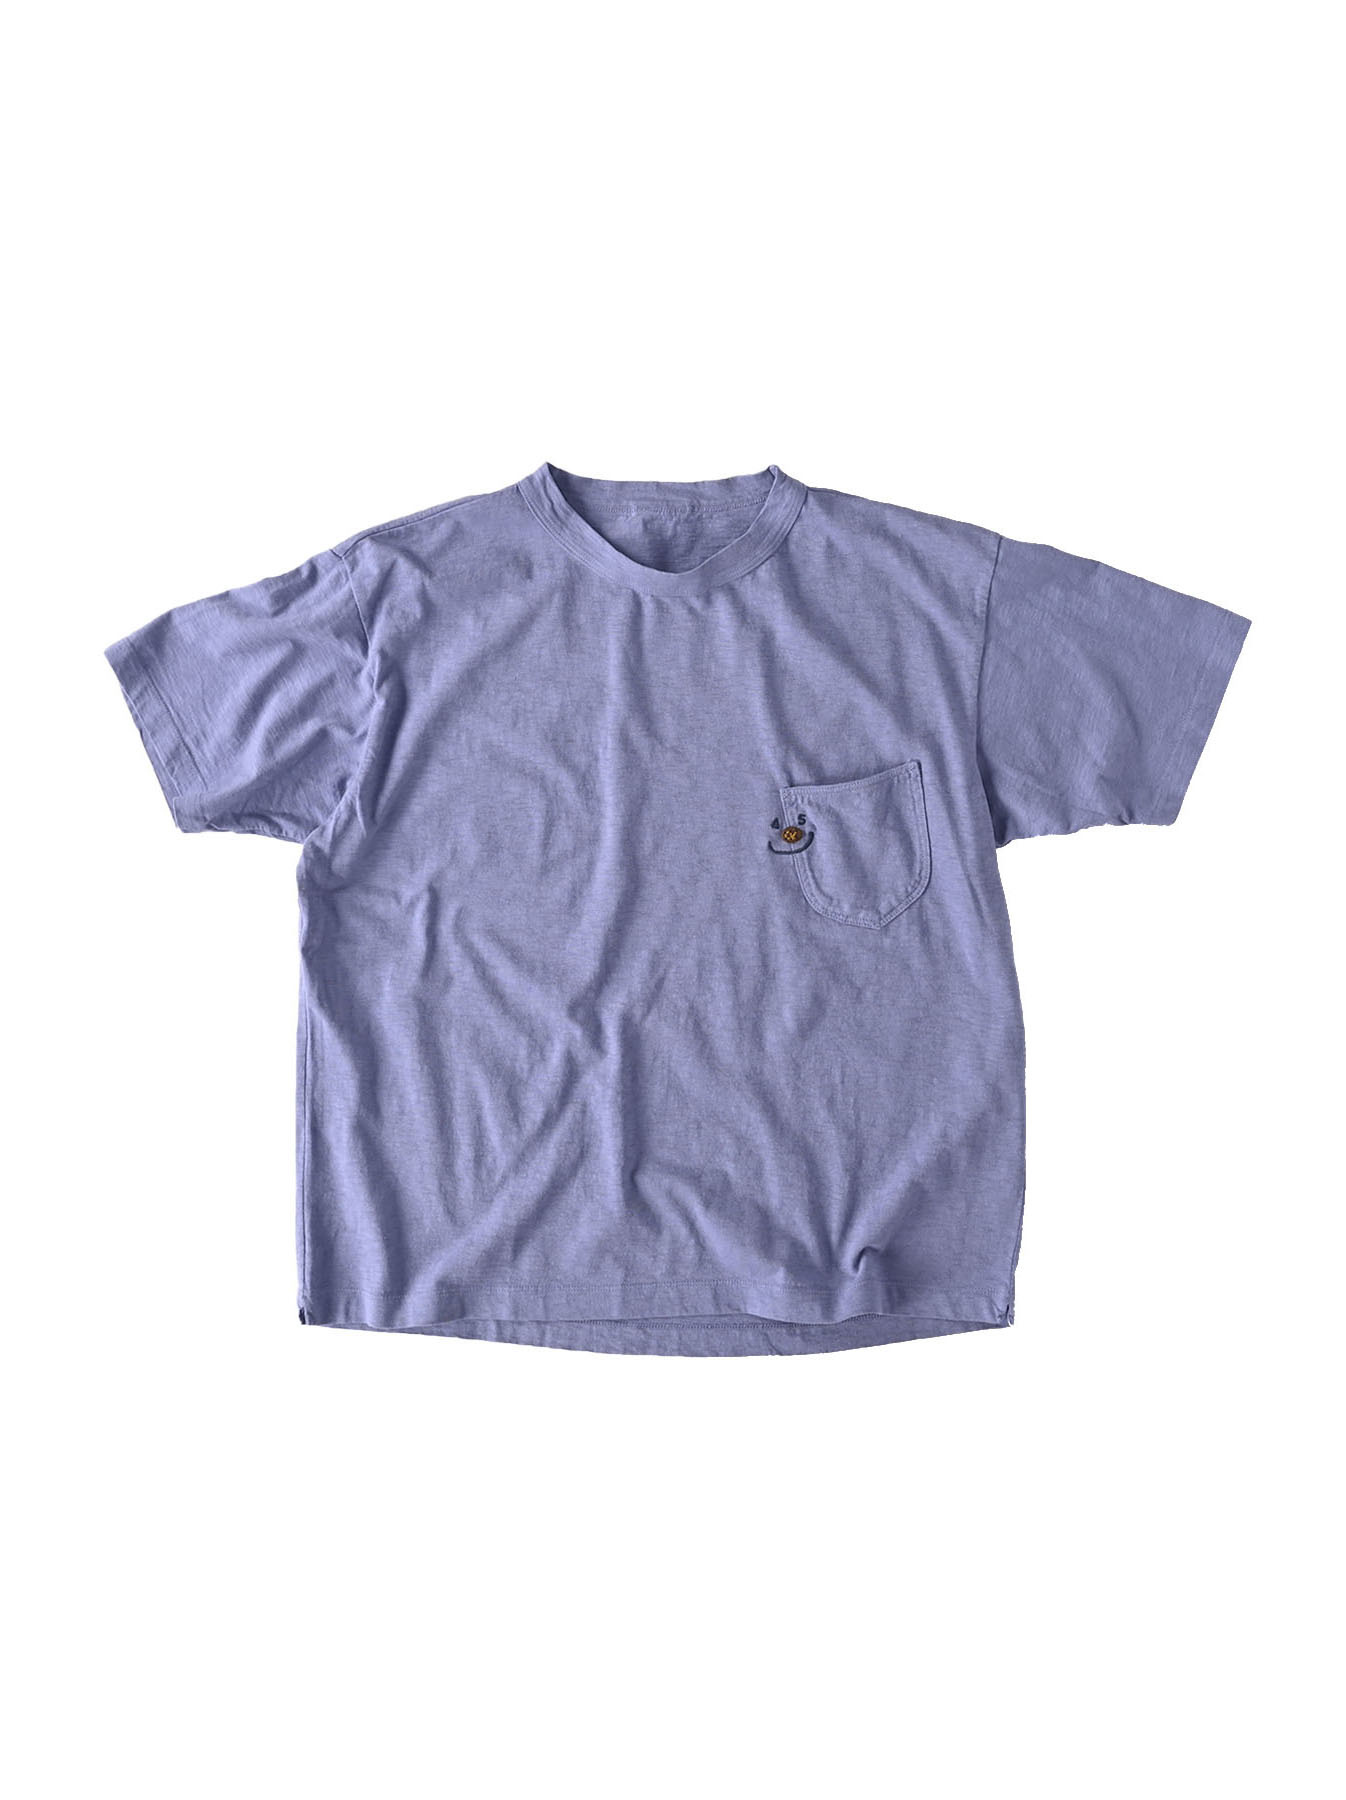 Smile R Embroidery 908 Ocean T-shirt (0621)-1